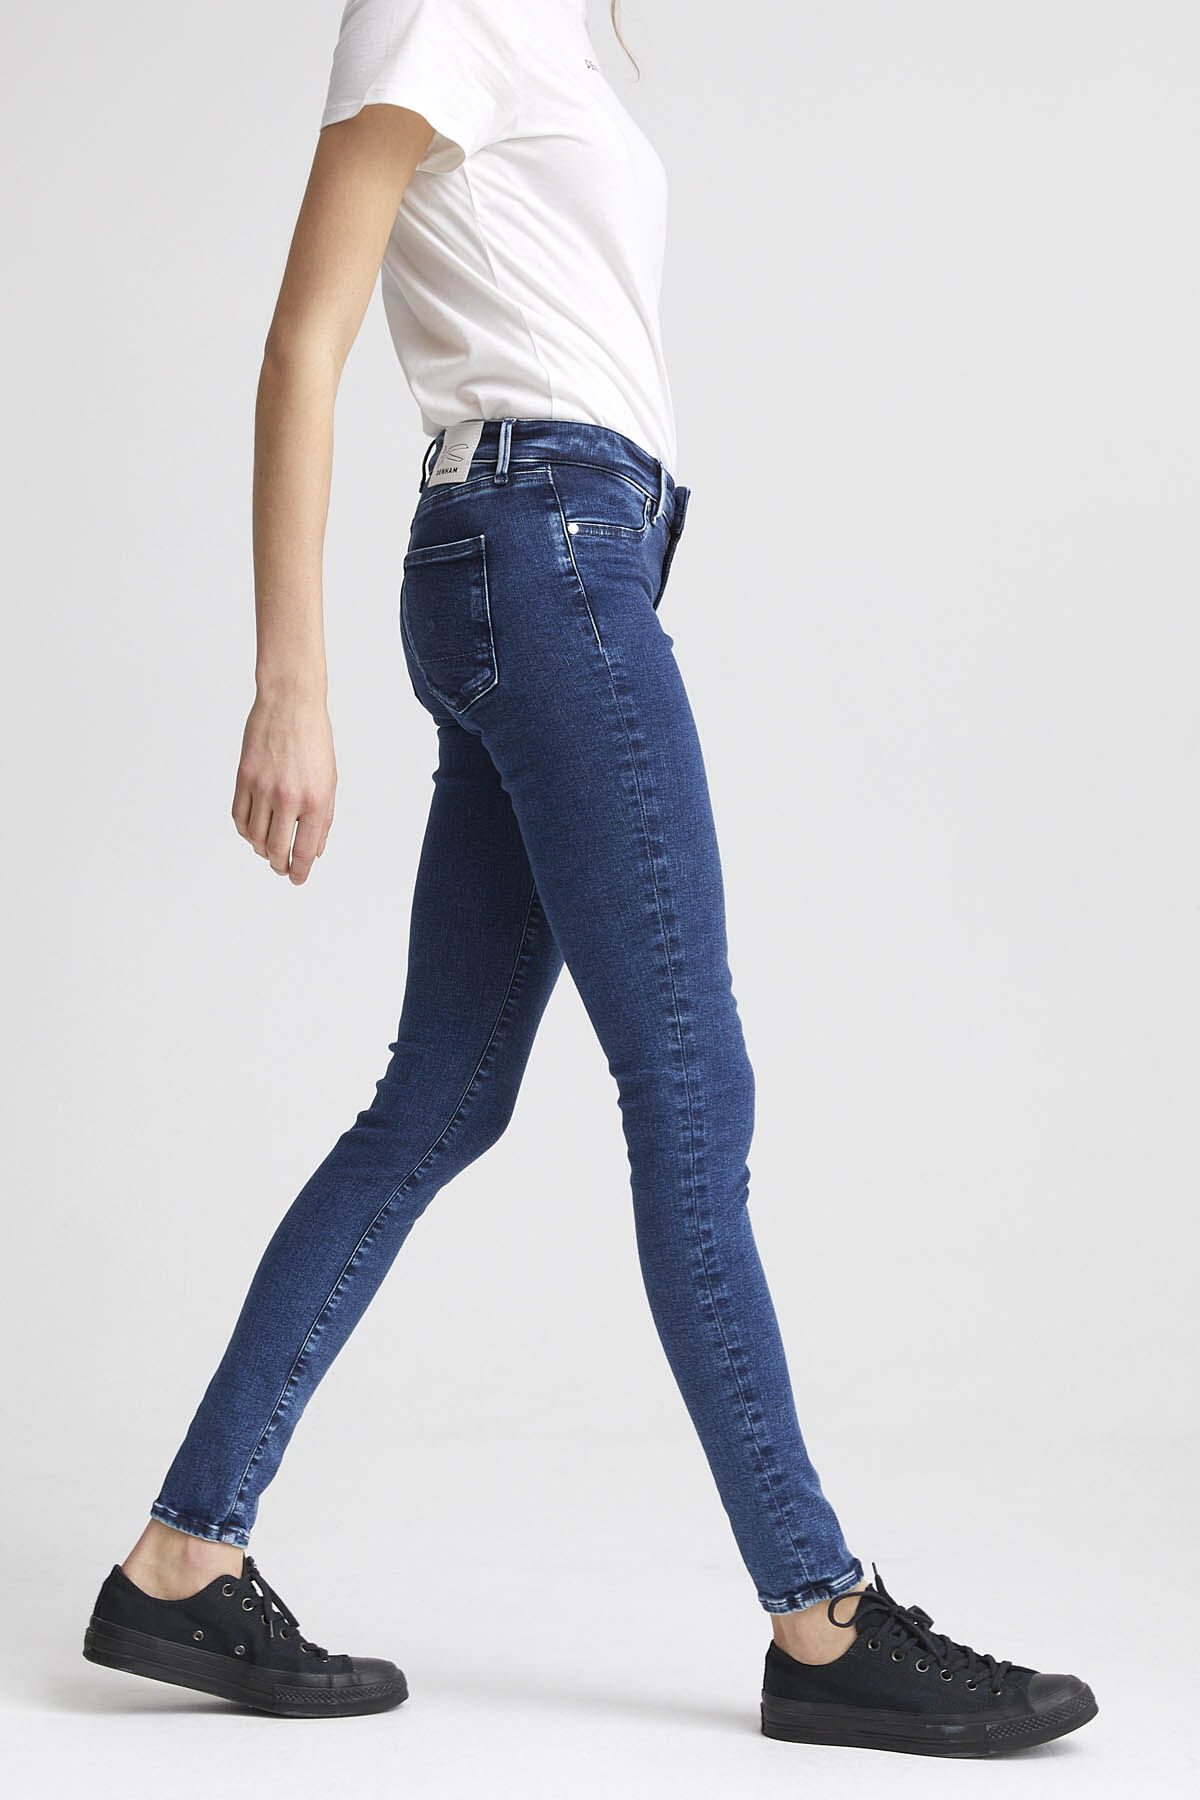 SPRAY Dark Stonewashed Denim - Mid-rise Tight Fit